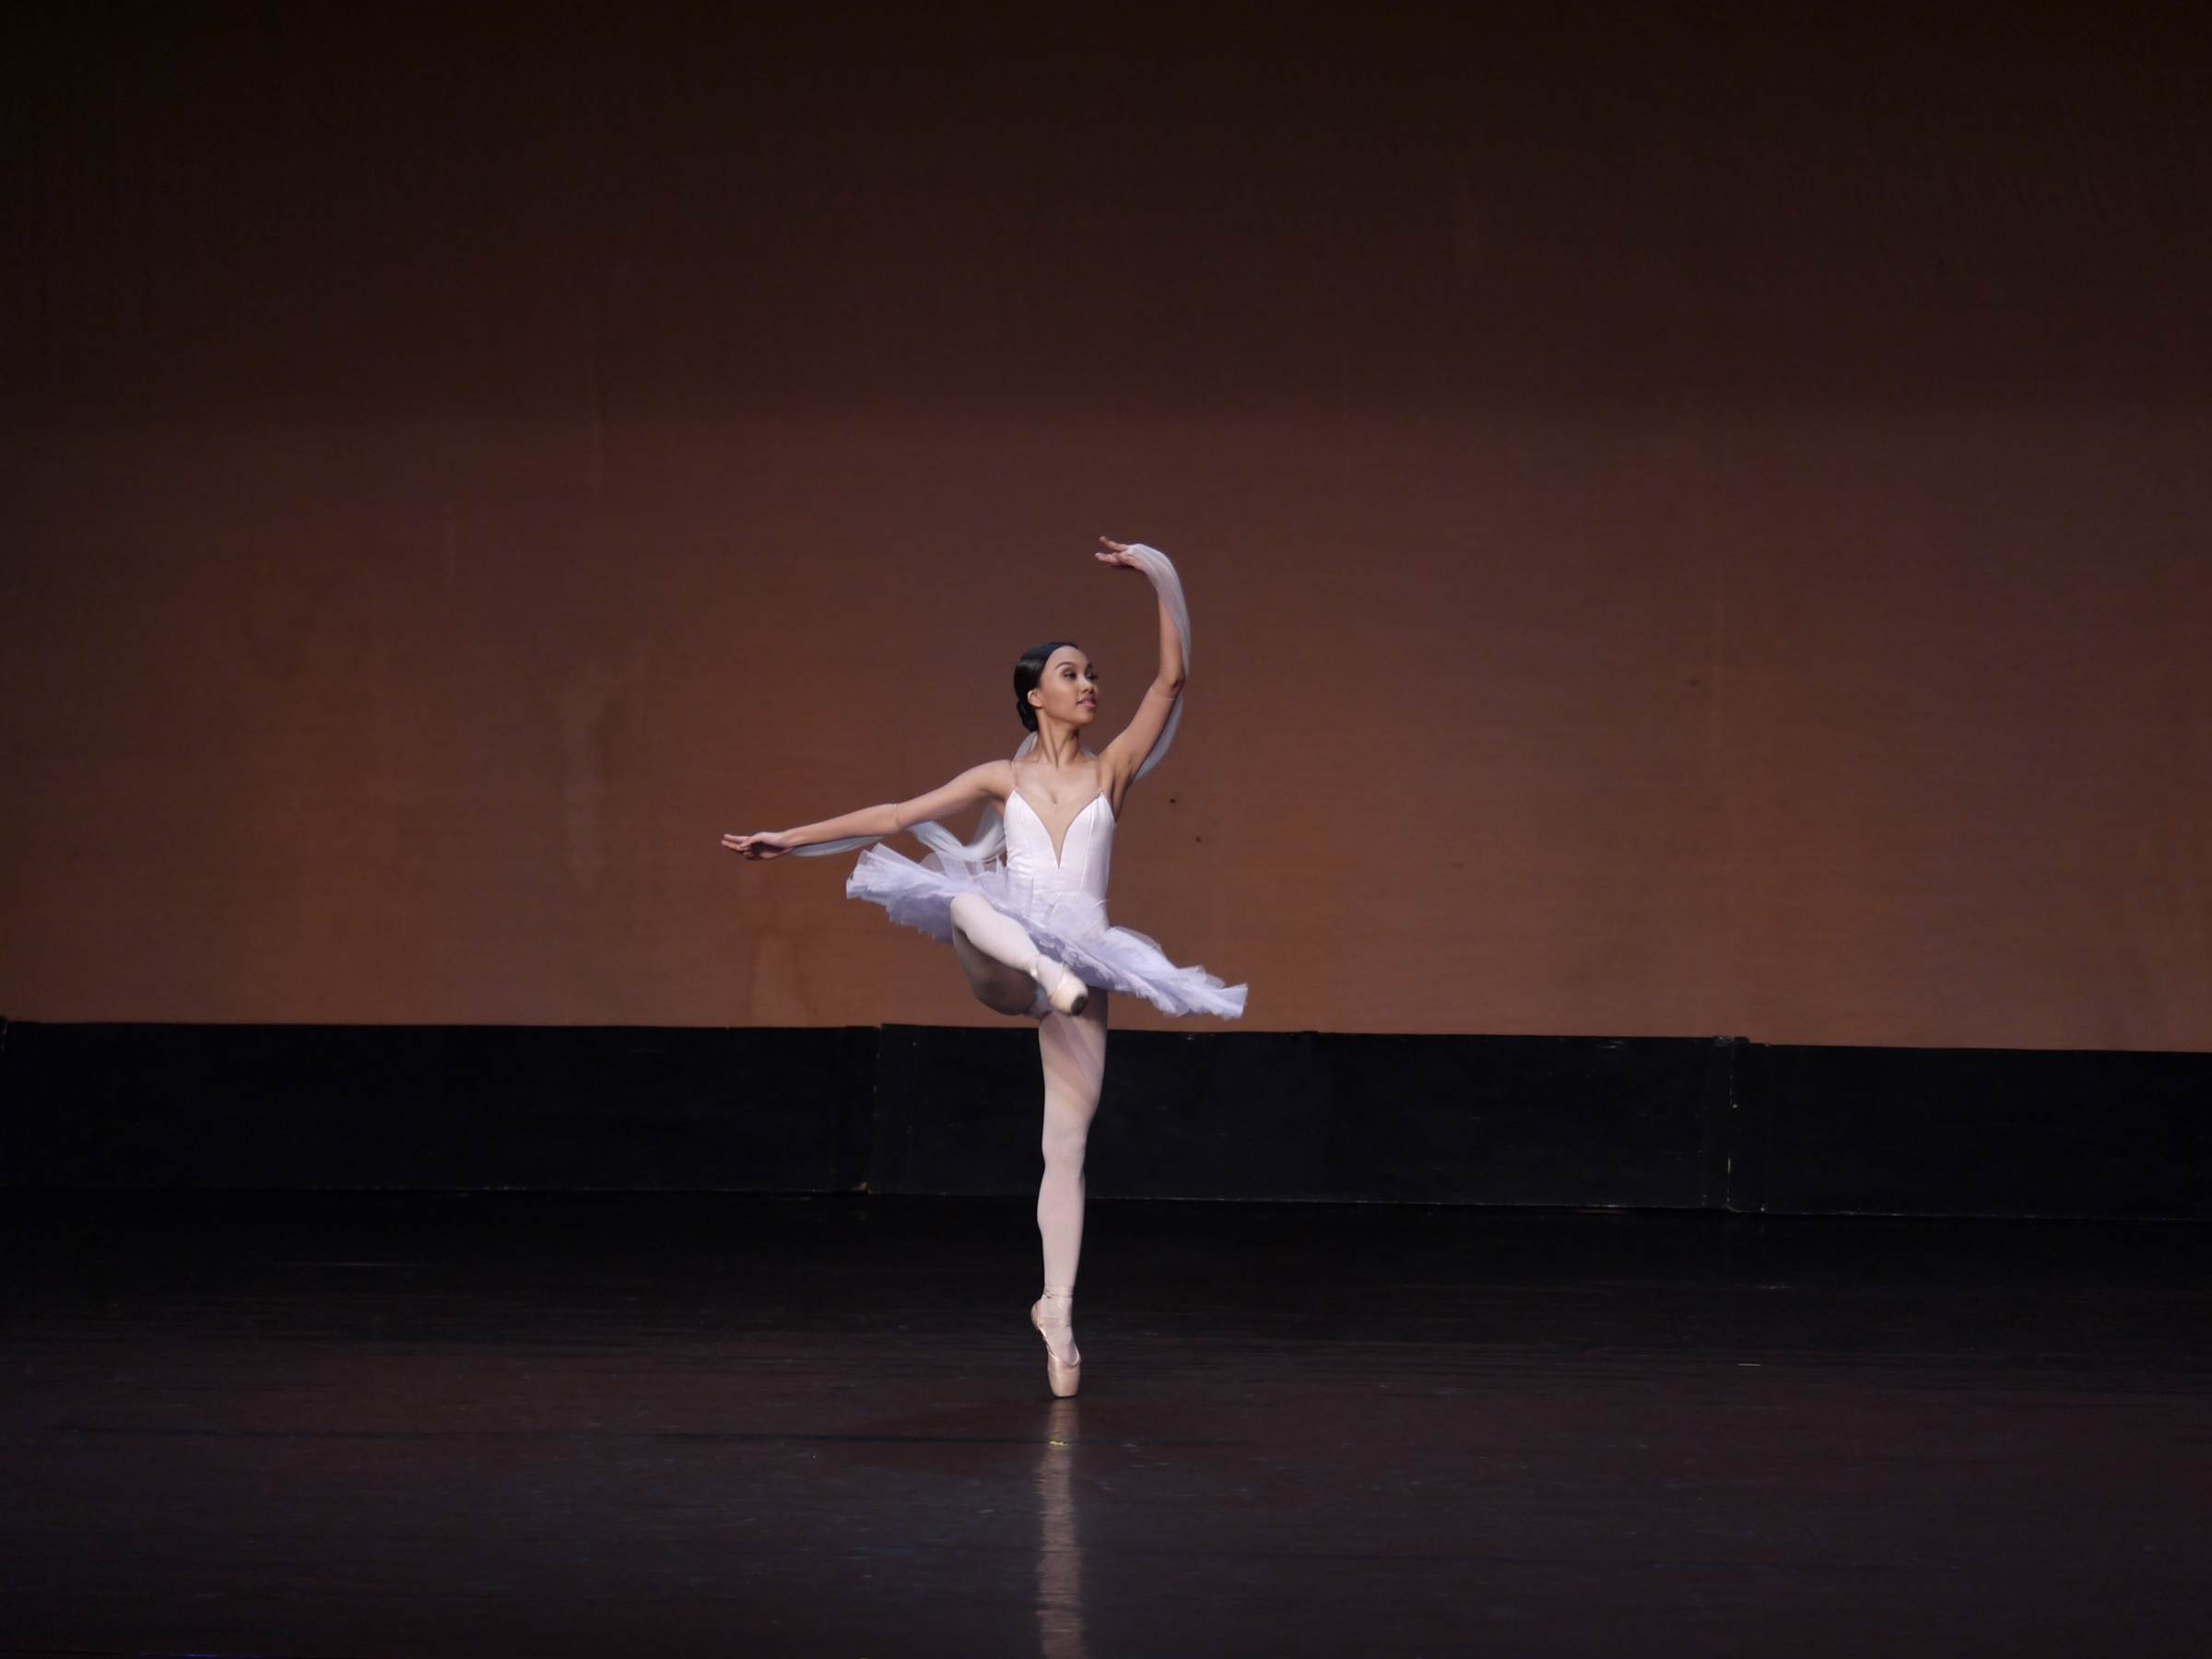 Although she likes performing over competing, Fiona knows the latter brings valuable experiences, such as when she participated in the 2018 CCP Ballet Competition. Photo by Giselle P. Kasilag